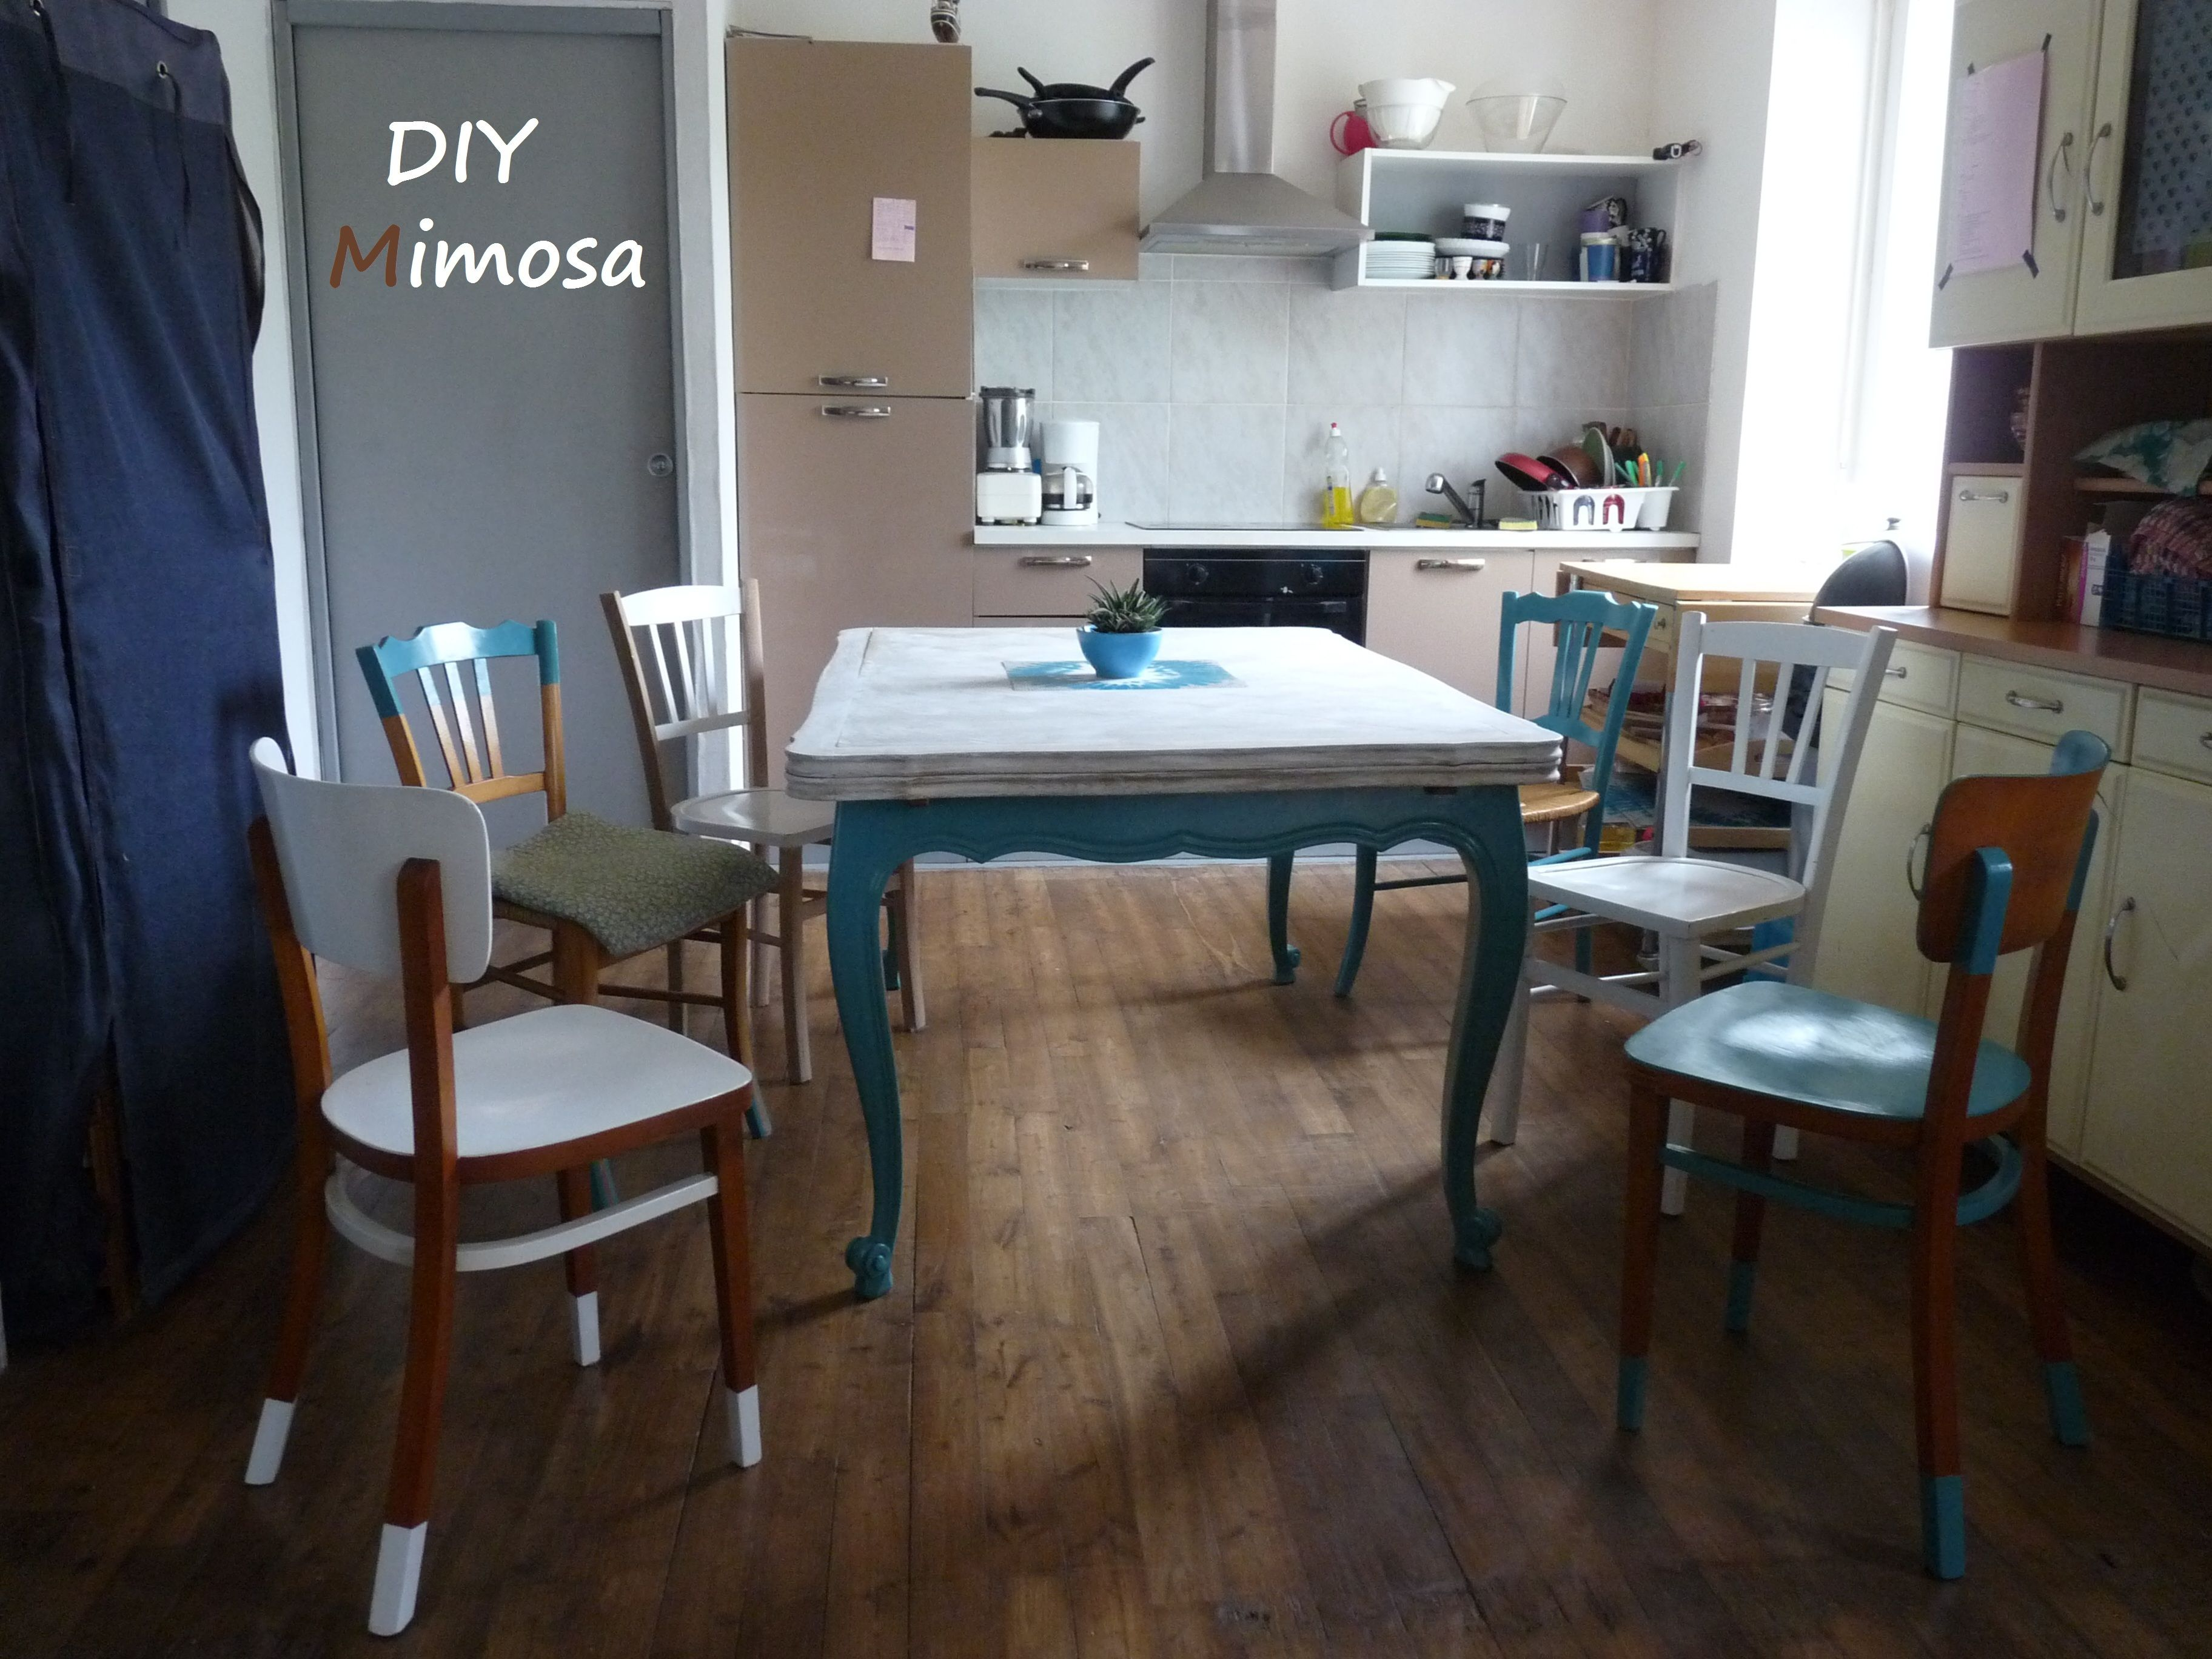 Salle A Manger Relookee Table Merisier Relookee Chaises Relookees Relooking Meuble Diy Home Decor Home Furniture